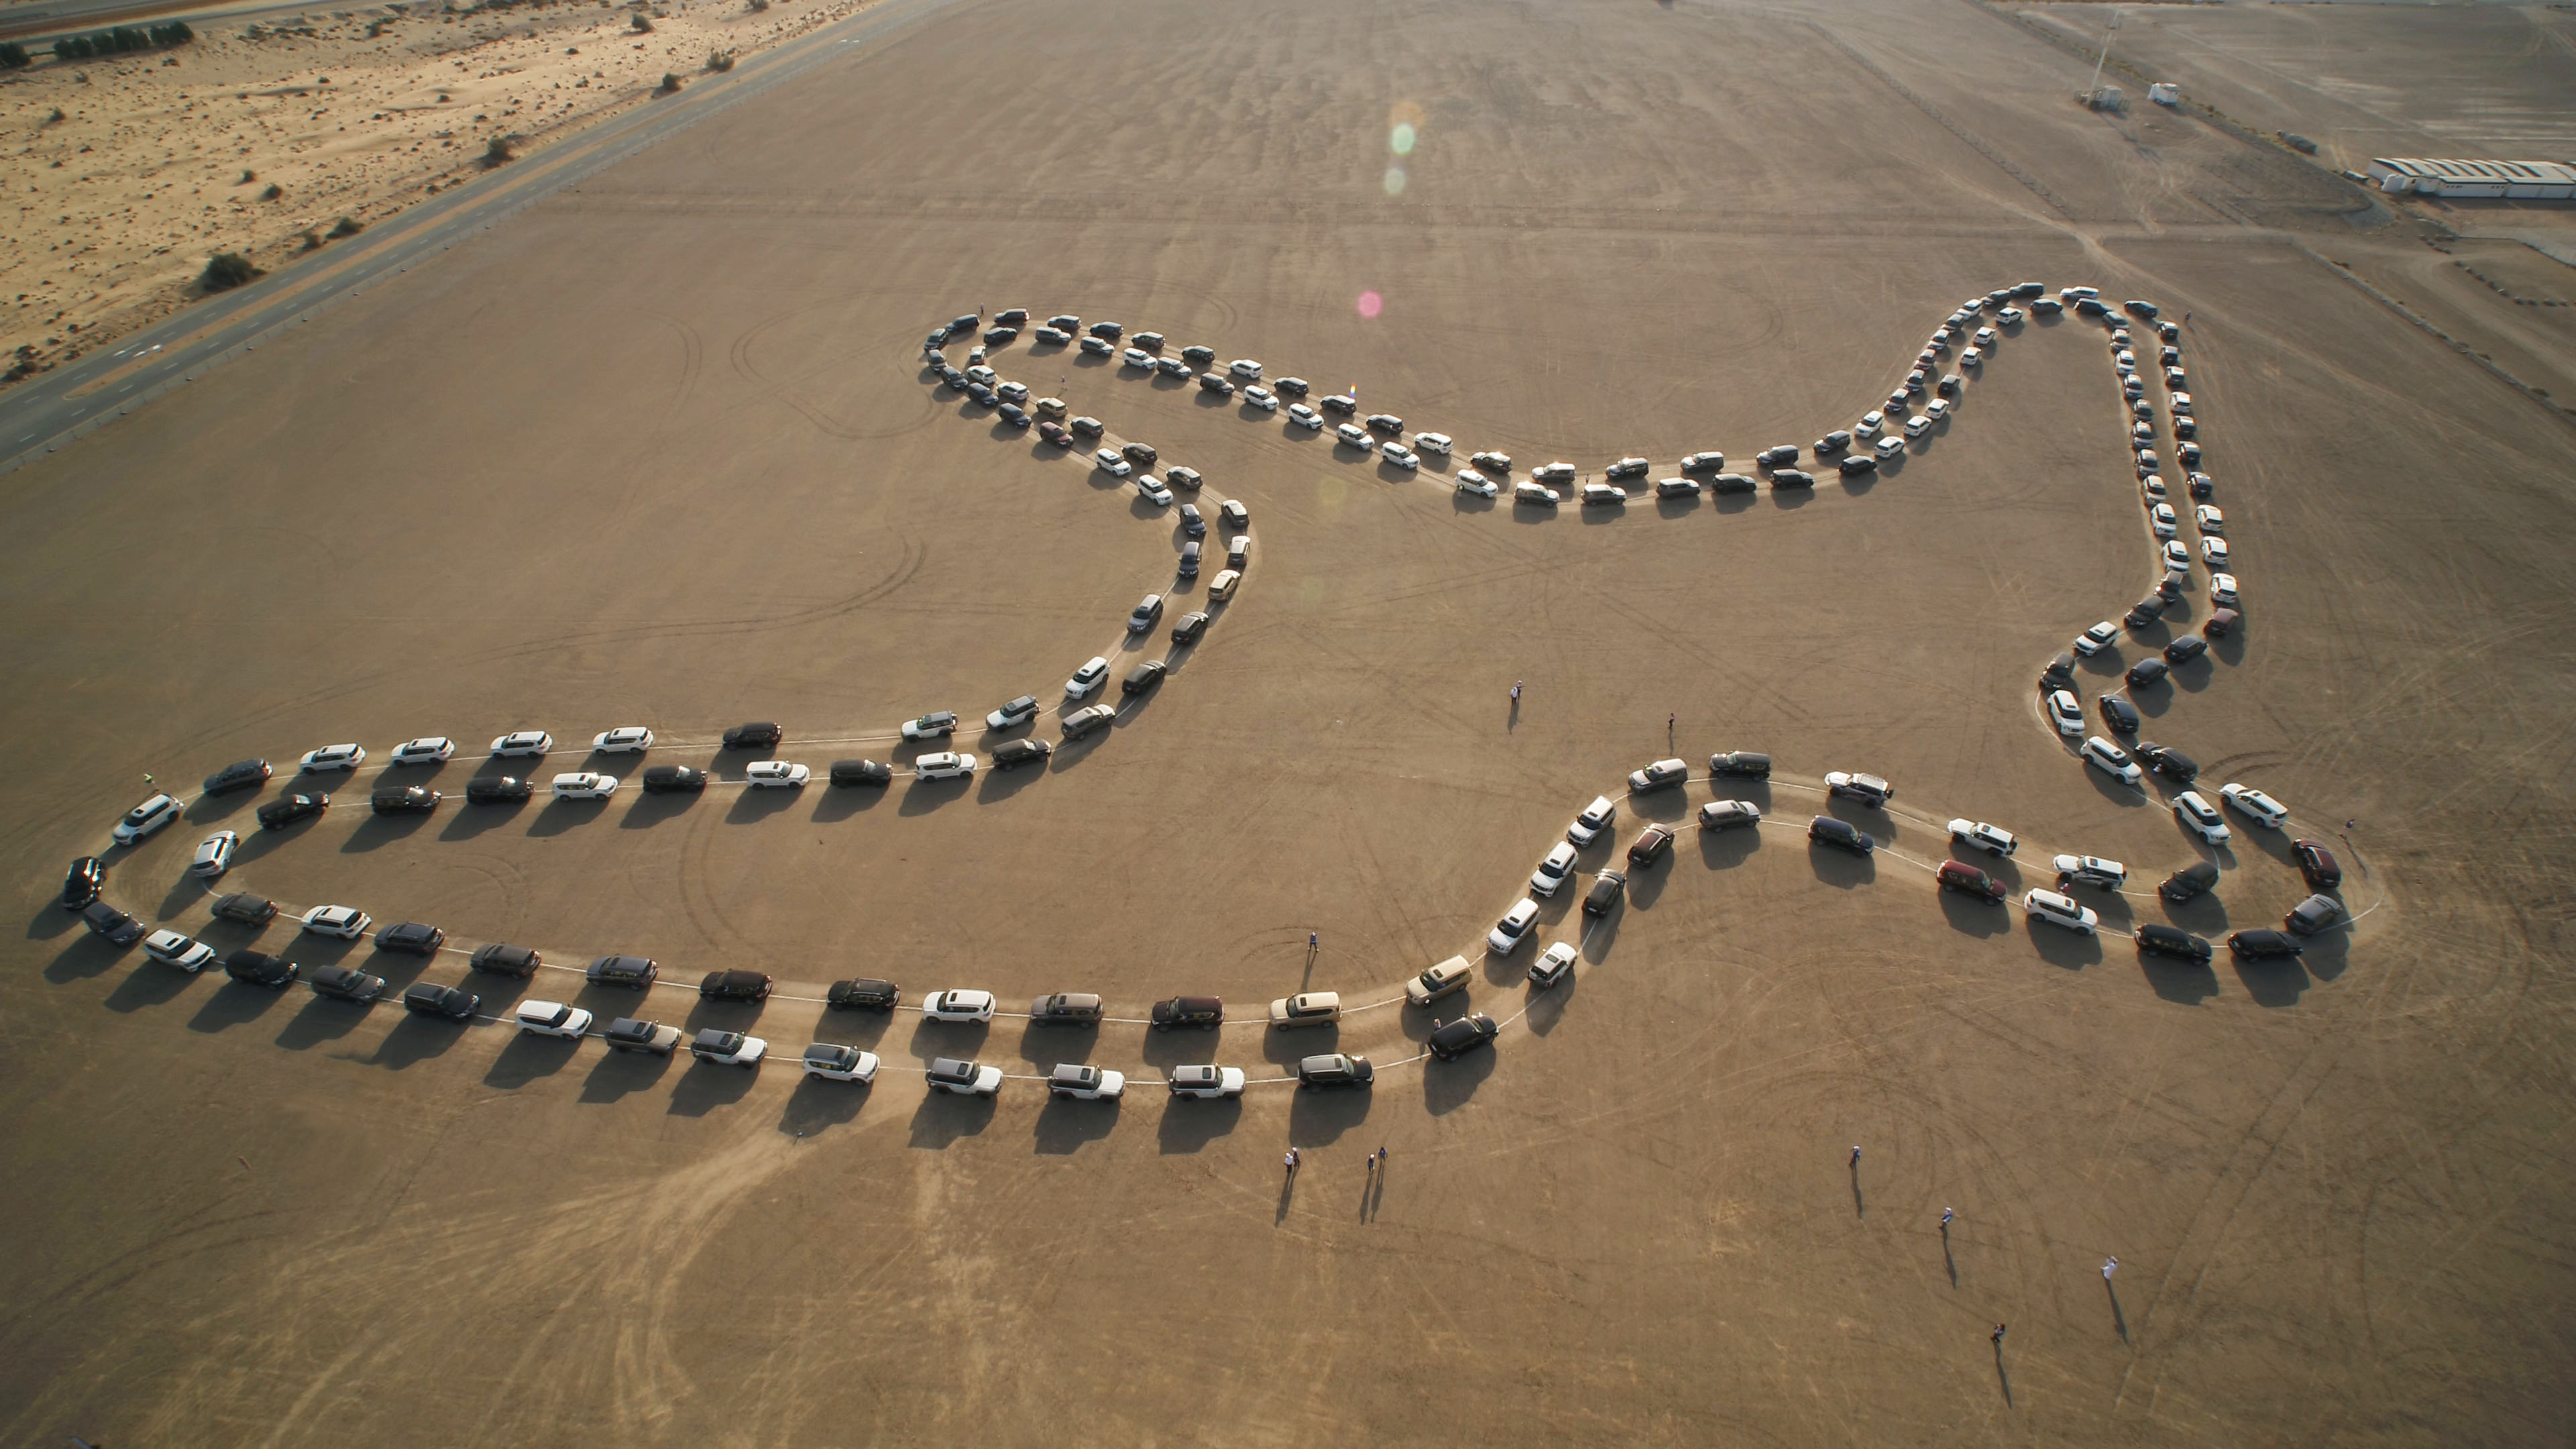 Nissan Patrol Breaks GUINNESS WORLD RECORDS title for Largest Synchronized Car Dance